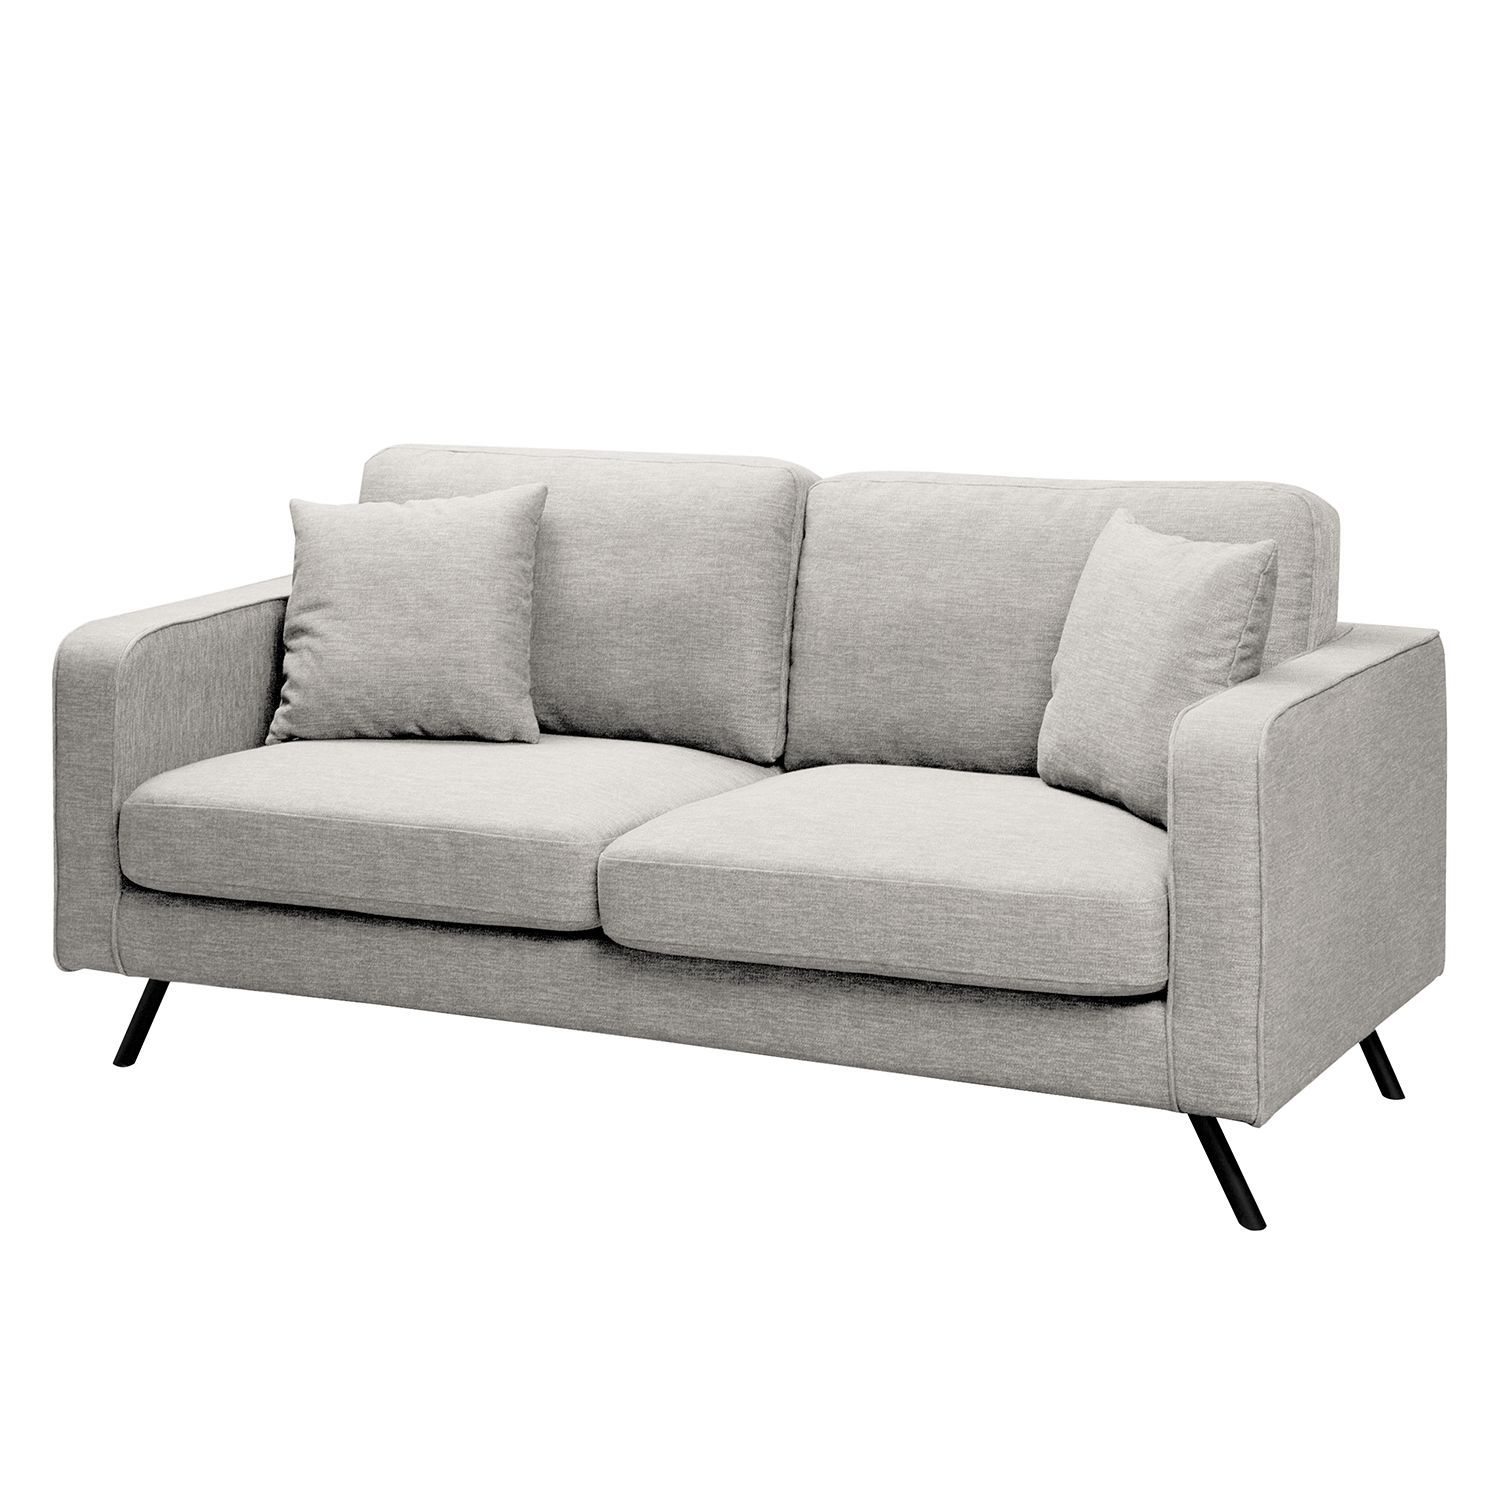 Gmk Home & Living Sofa Pin By Ladendirekt On Sofas Couches Sofa Furniture